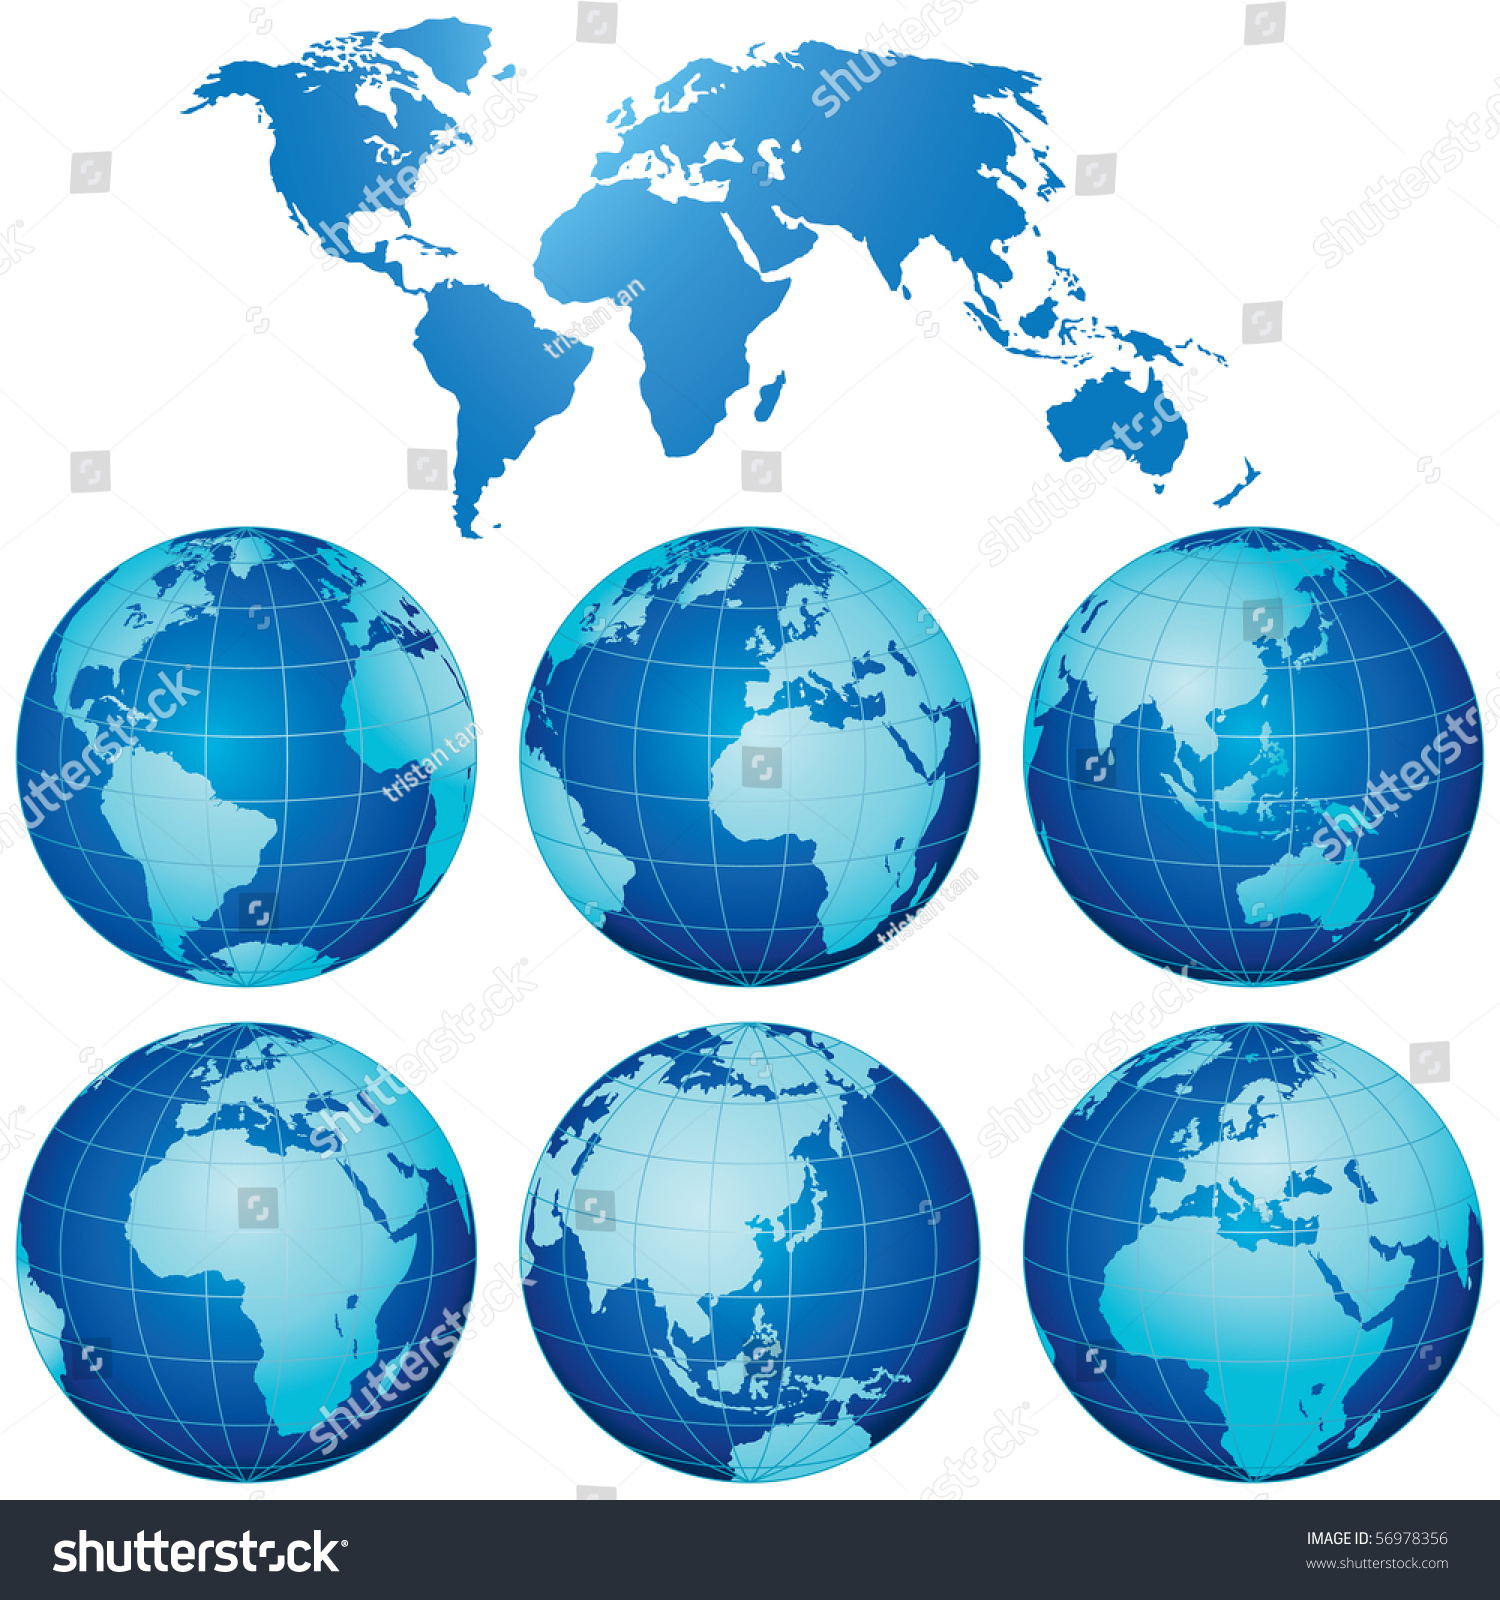 Vector world map globes set stock vector 56978356 shutterstock vector world map with globes set gumiabroncs Images